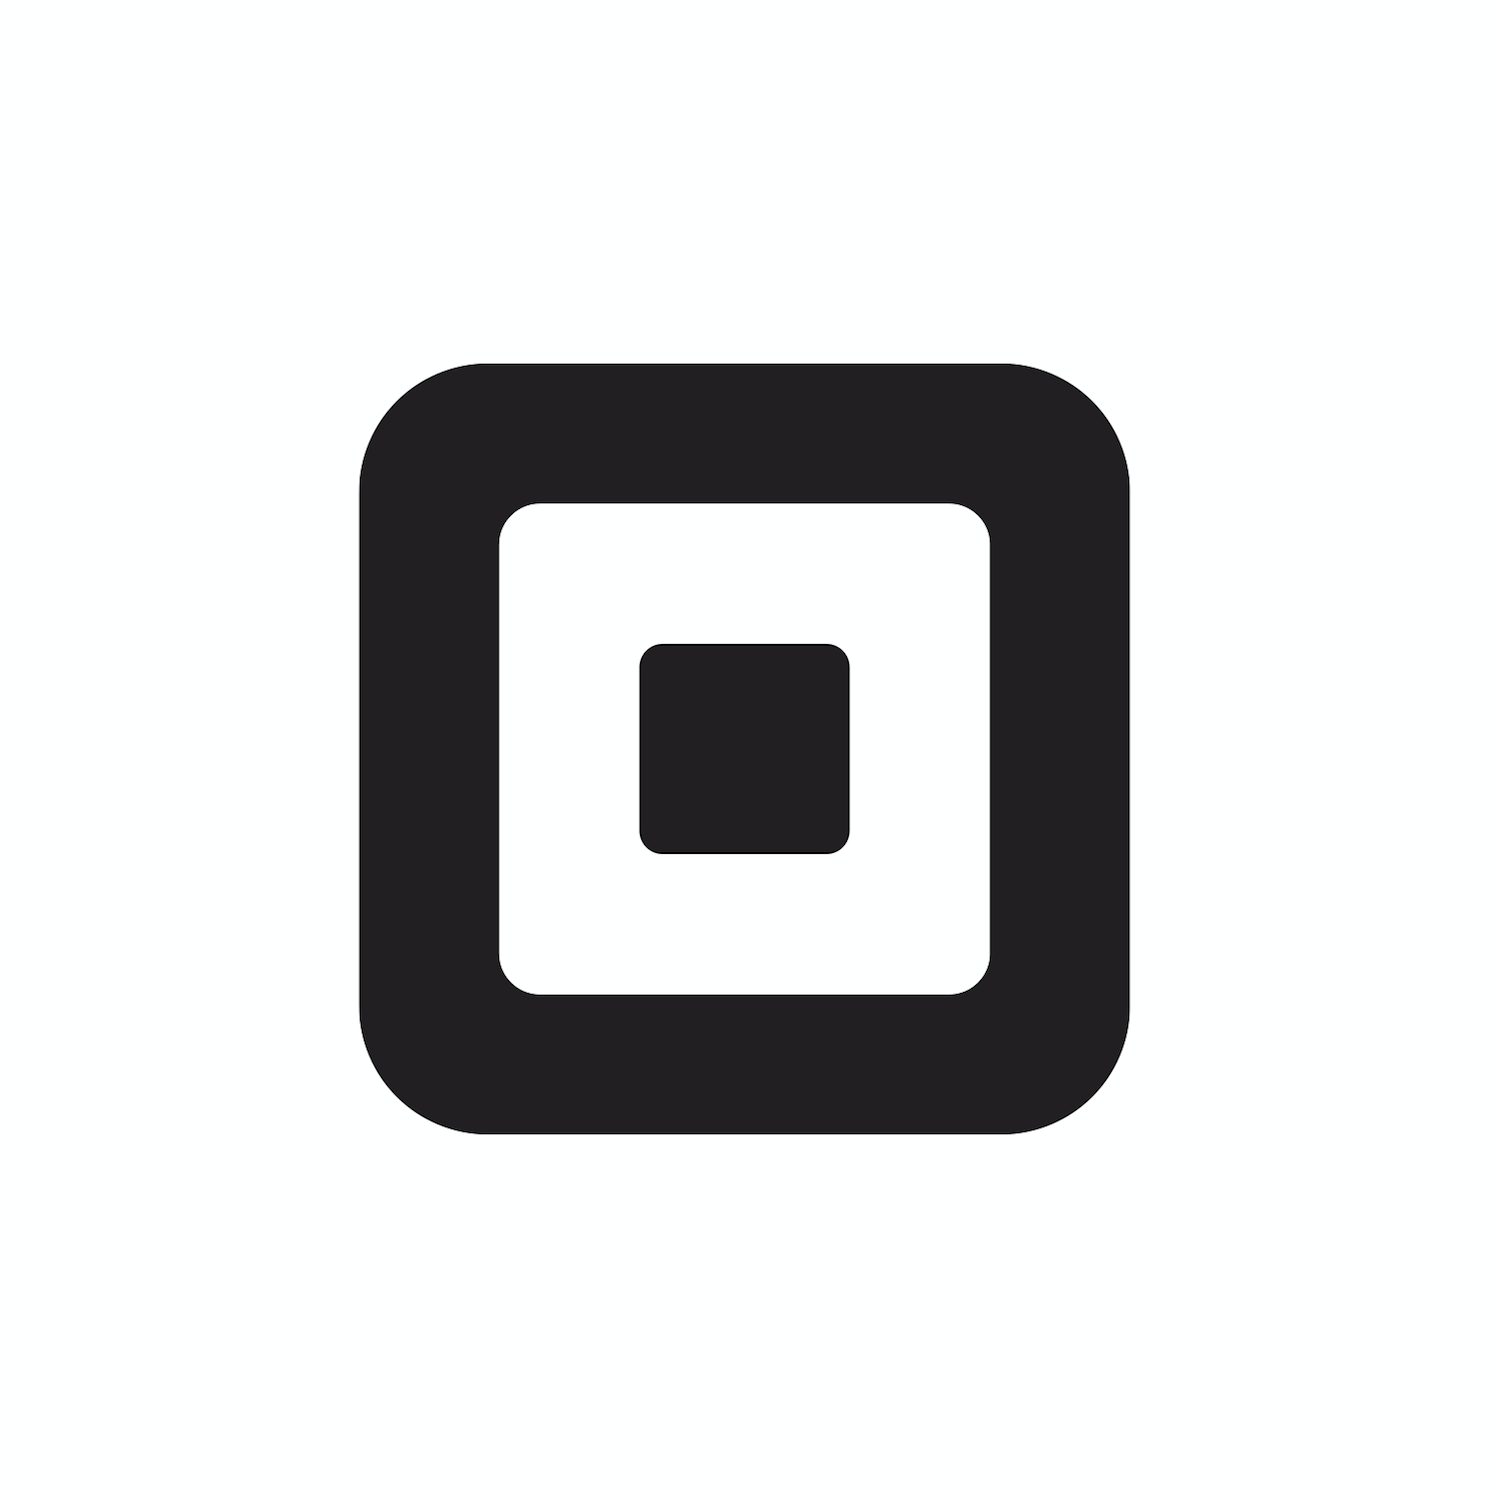 Shift10 Technologies can help integrate Square into your next